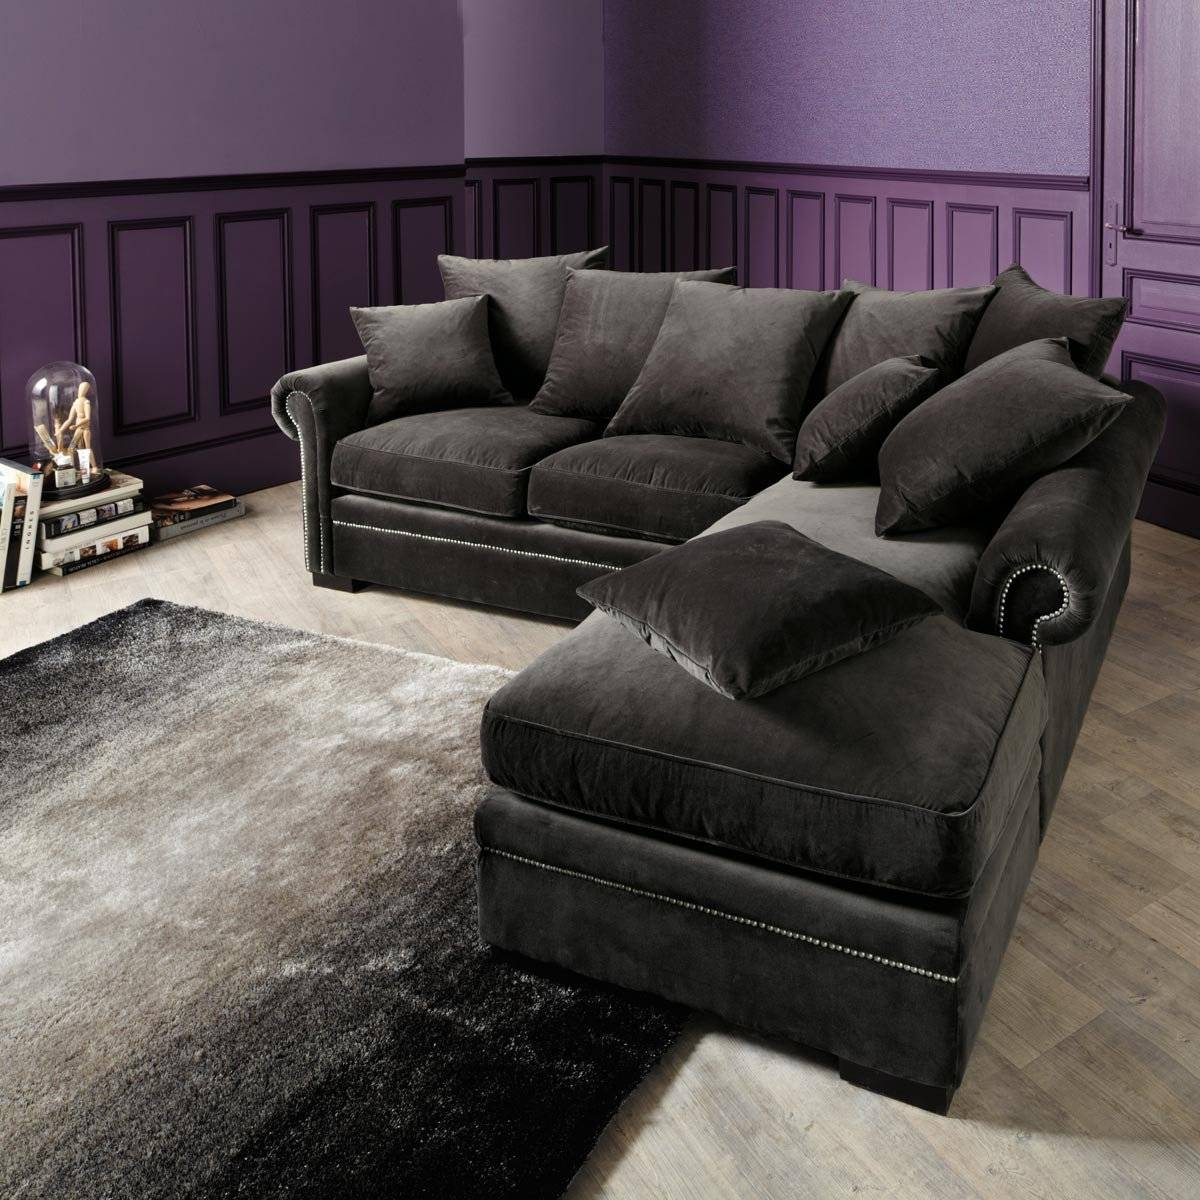 Grey Velvet Sofa Sectional | Centerfieldbar within Brown Velvet Sofas (Image 8 of 15)